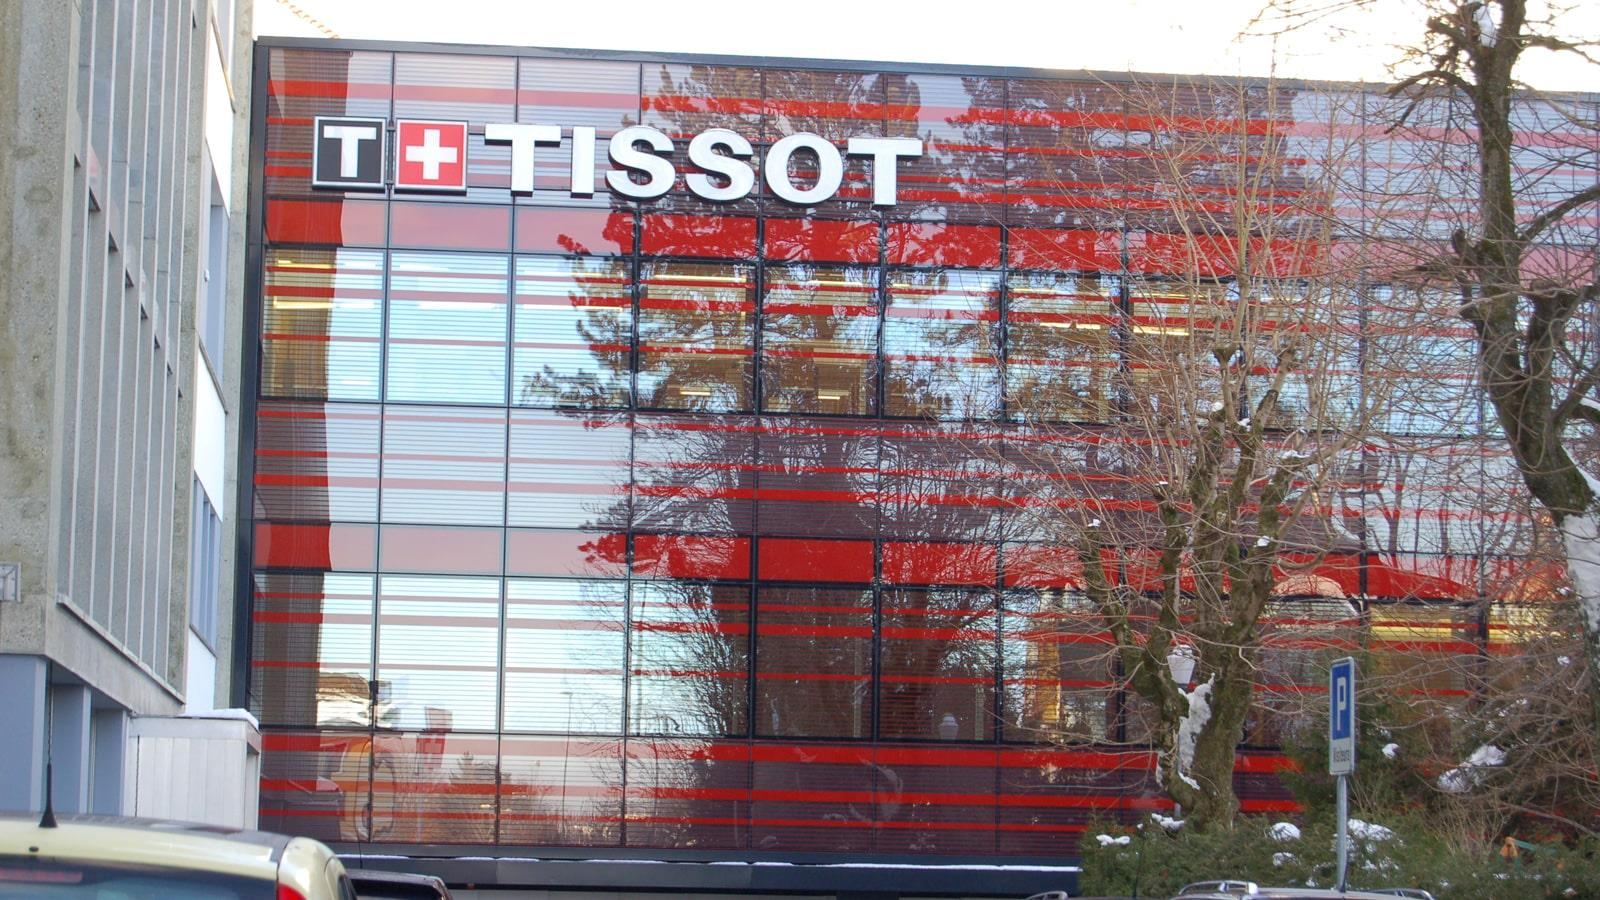 Tissot Headquators building